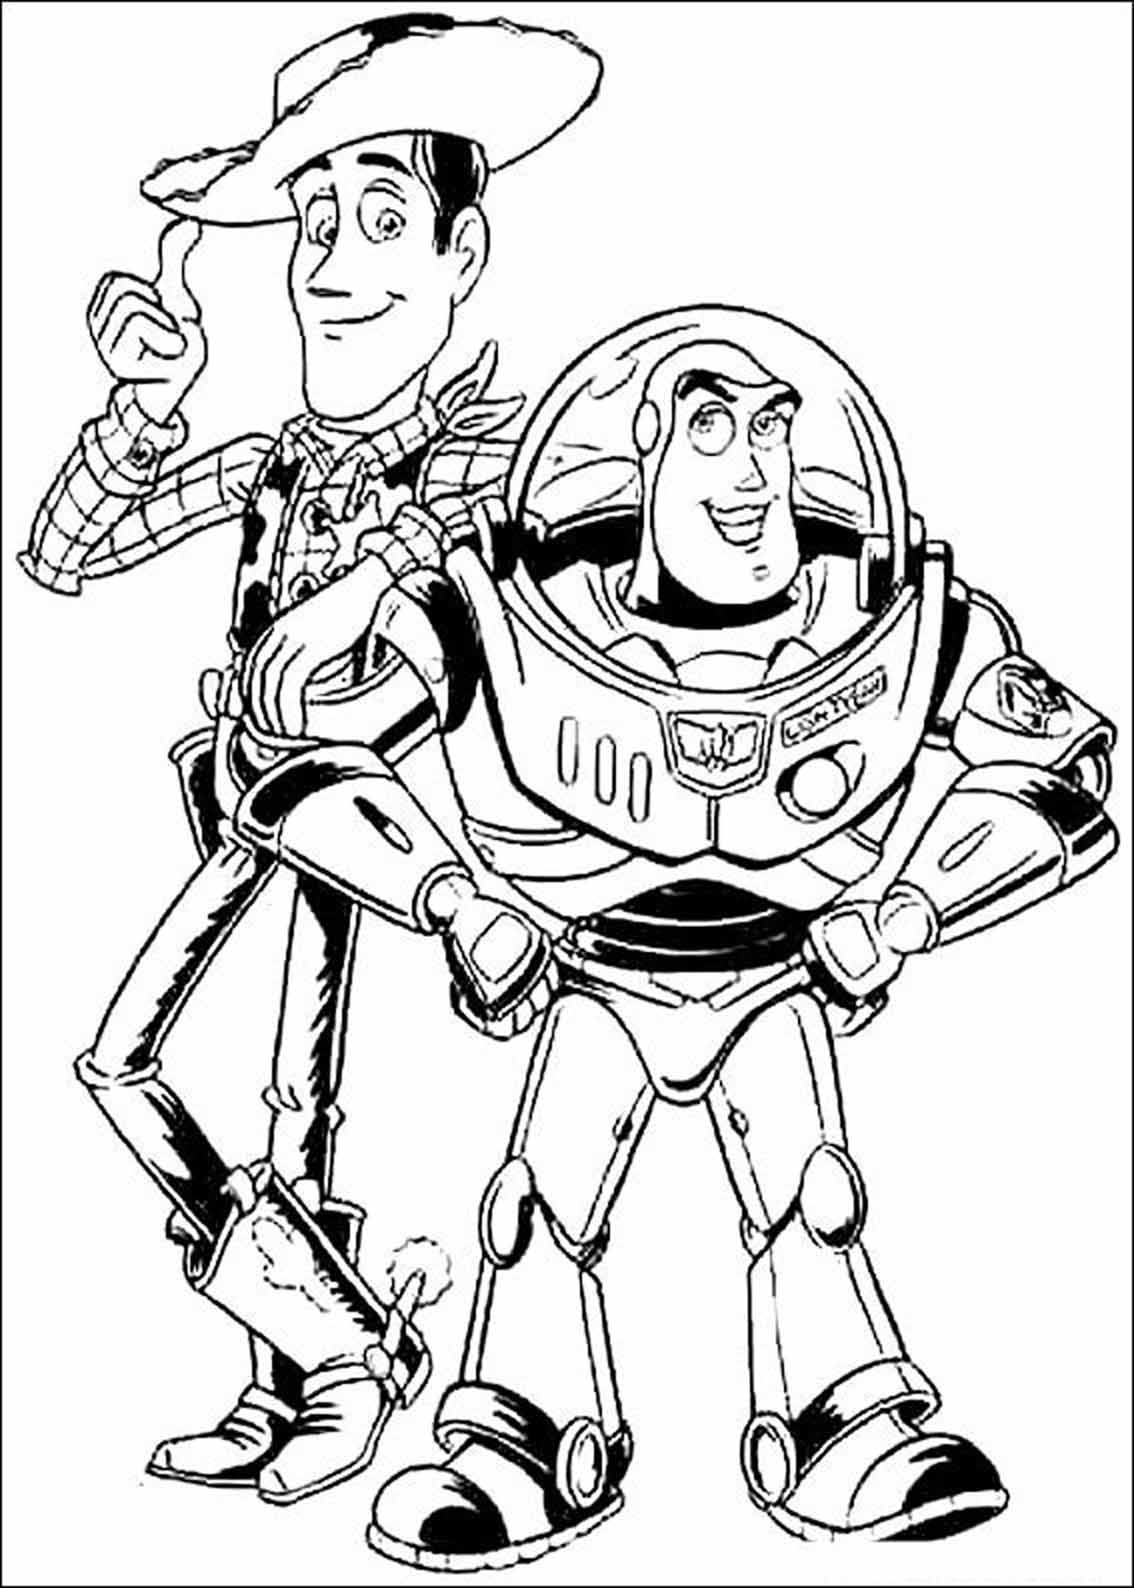 toy story 2 pictures to colour animations a 2 z coloring pages of toy story 2 pictures to colour toy story